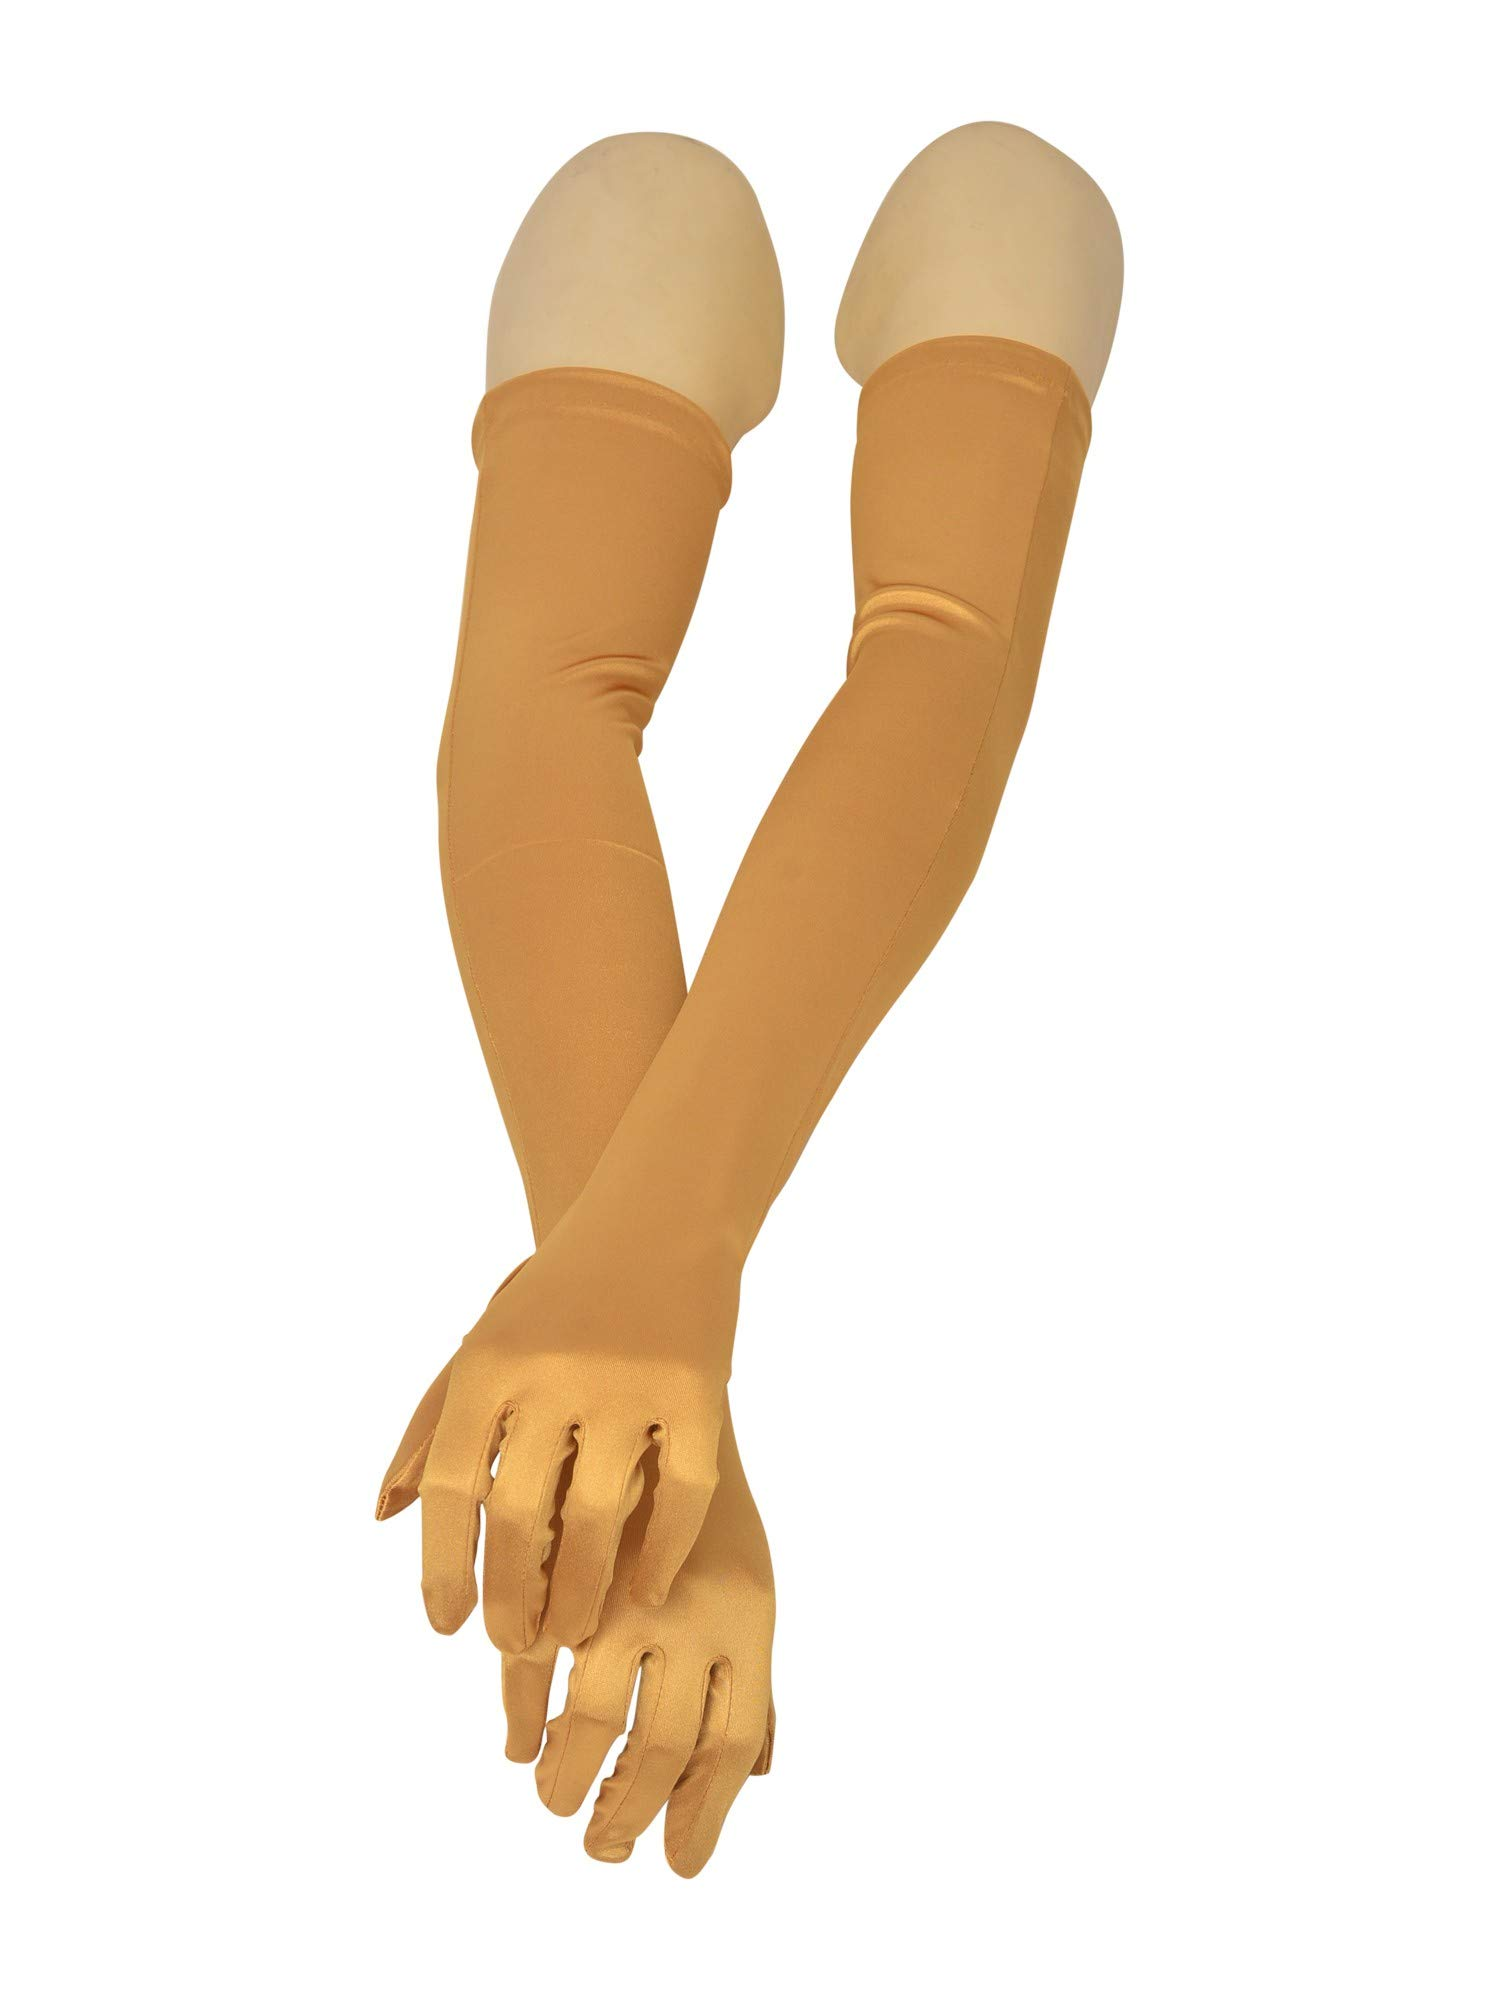 Big Girls Adult Gold Satin Opera Length Special Occasion Gloves by Futuron (Image #1)